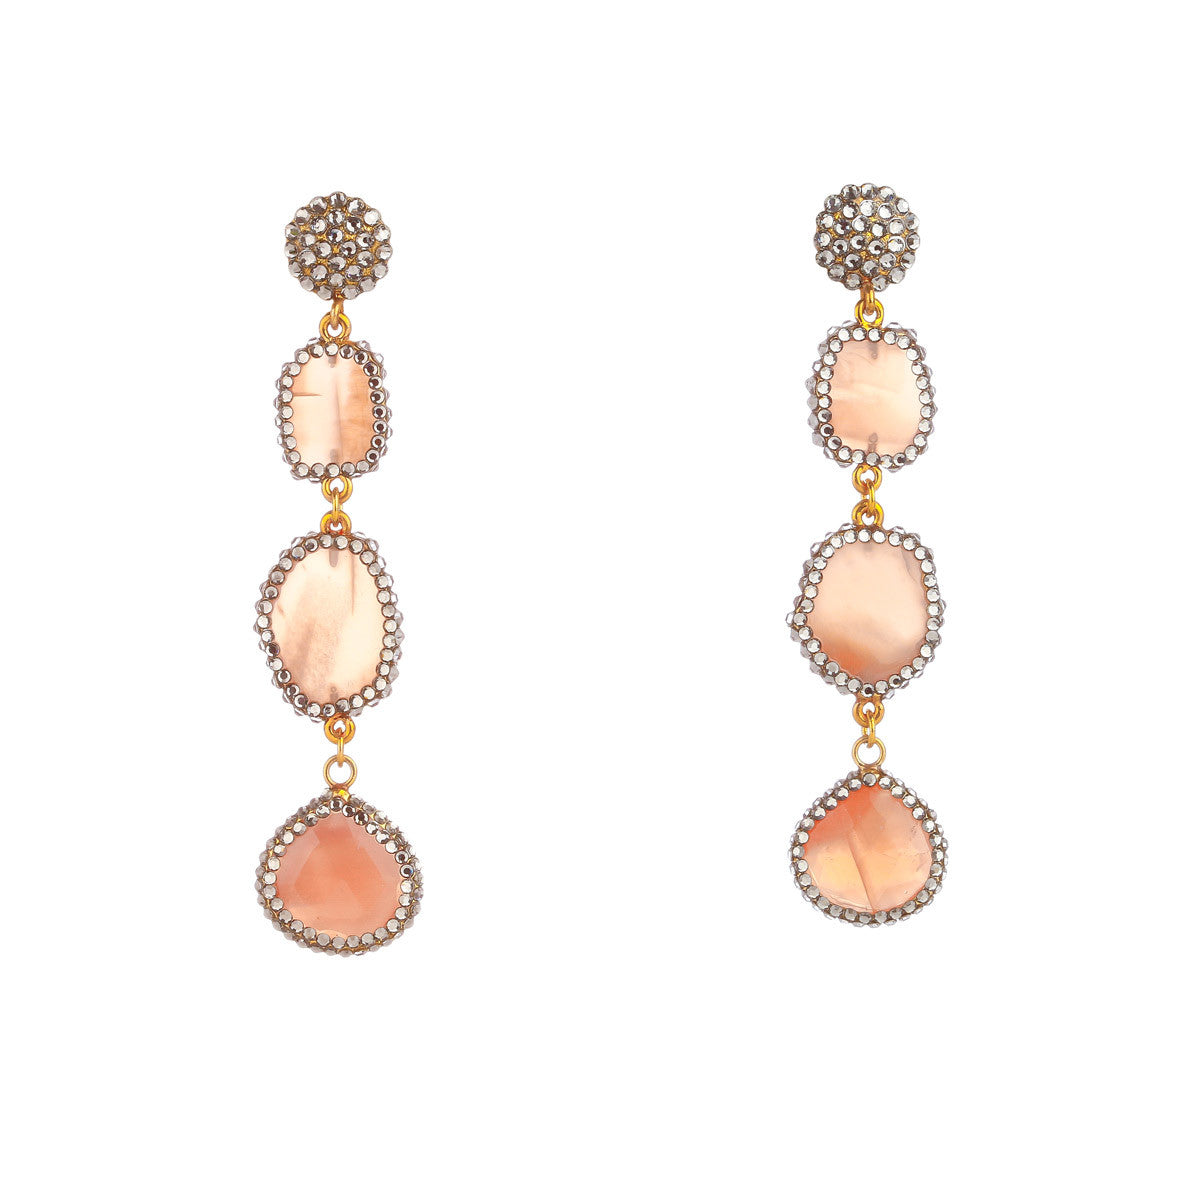 Organic Peach Earrings - The Firestone Collection - Fashion Jewelry & Accessories